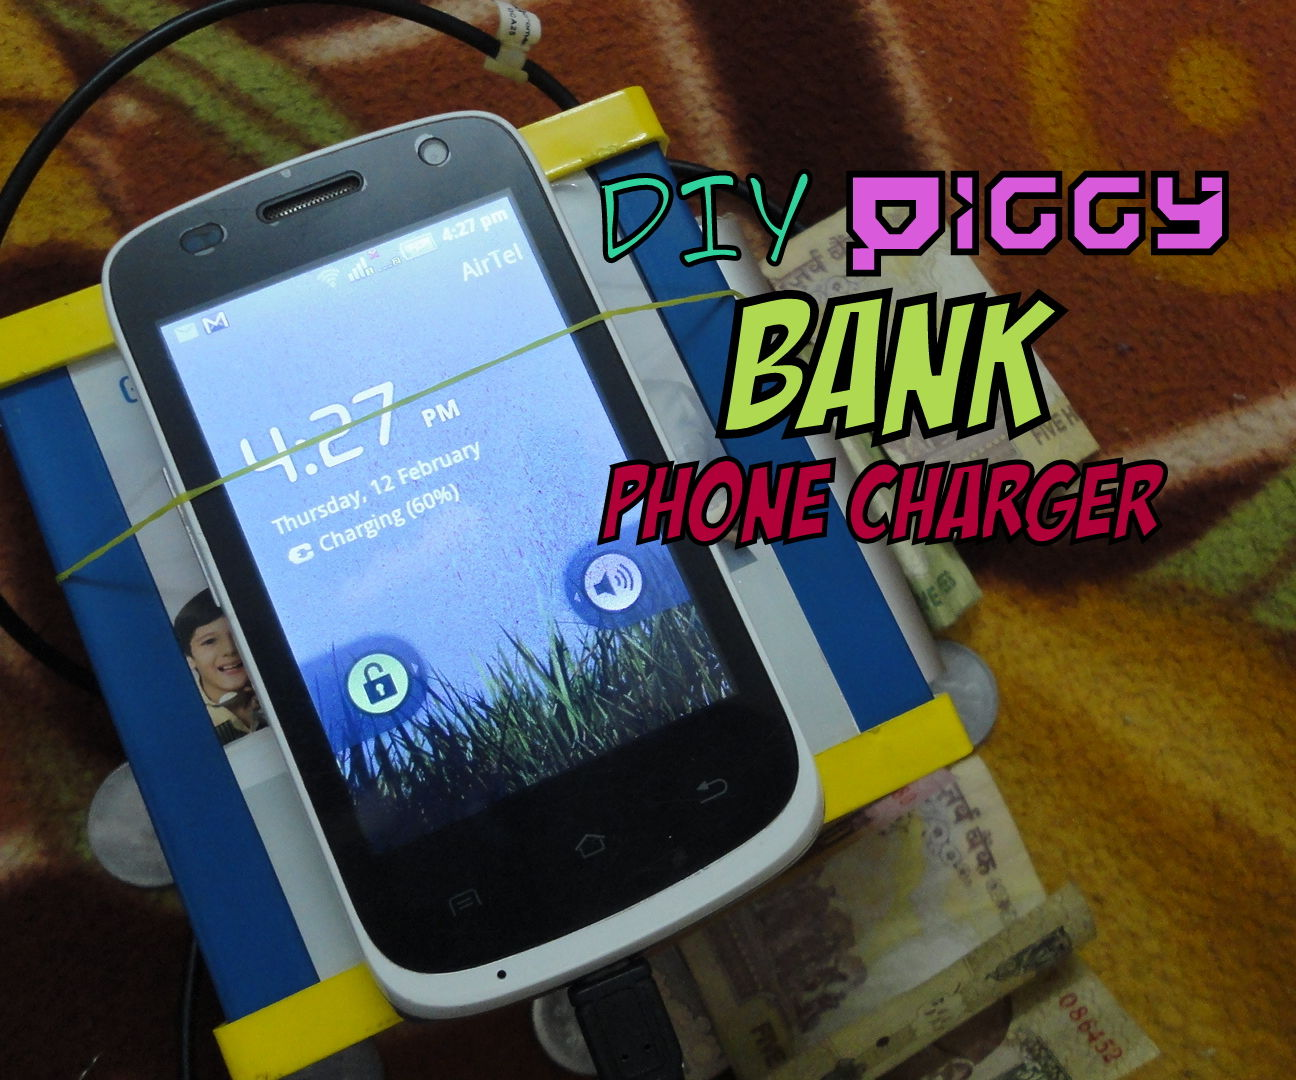 Piggy Bank Smartphone Charger (that still saves money!)